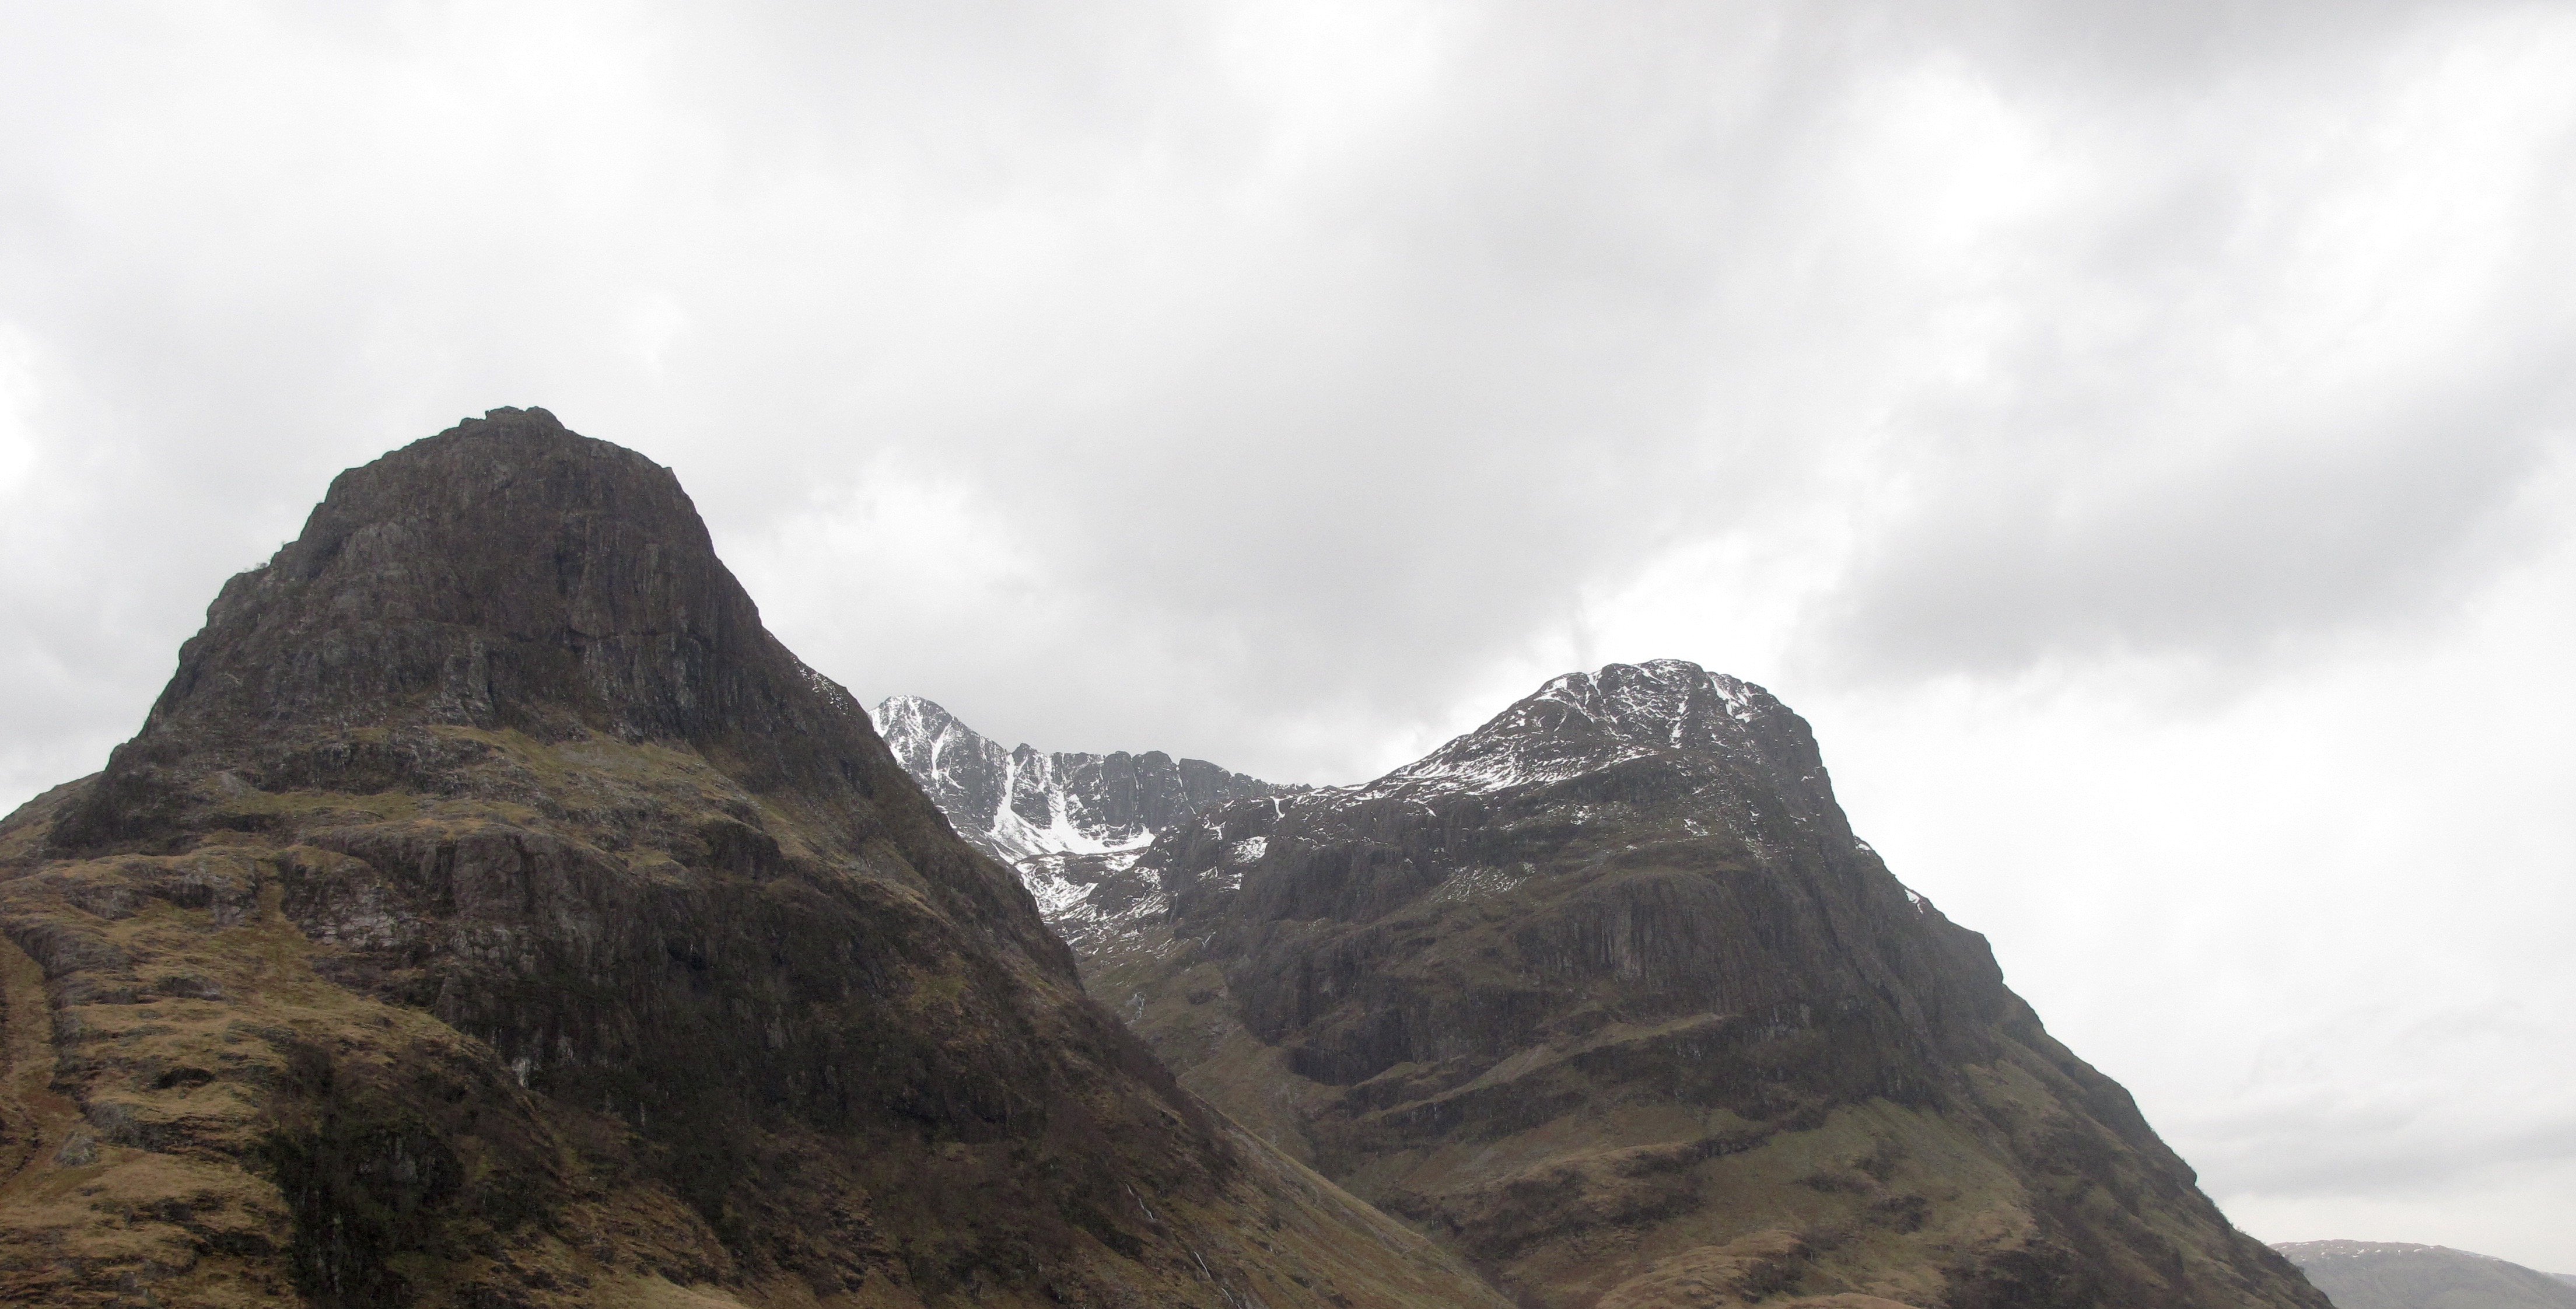 Looking into Stob Coire na Lochan